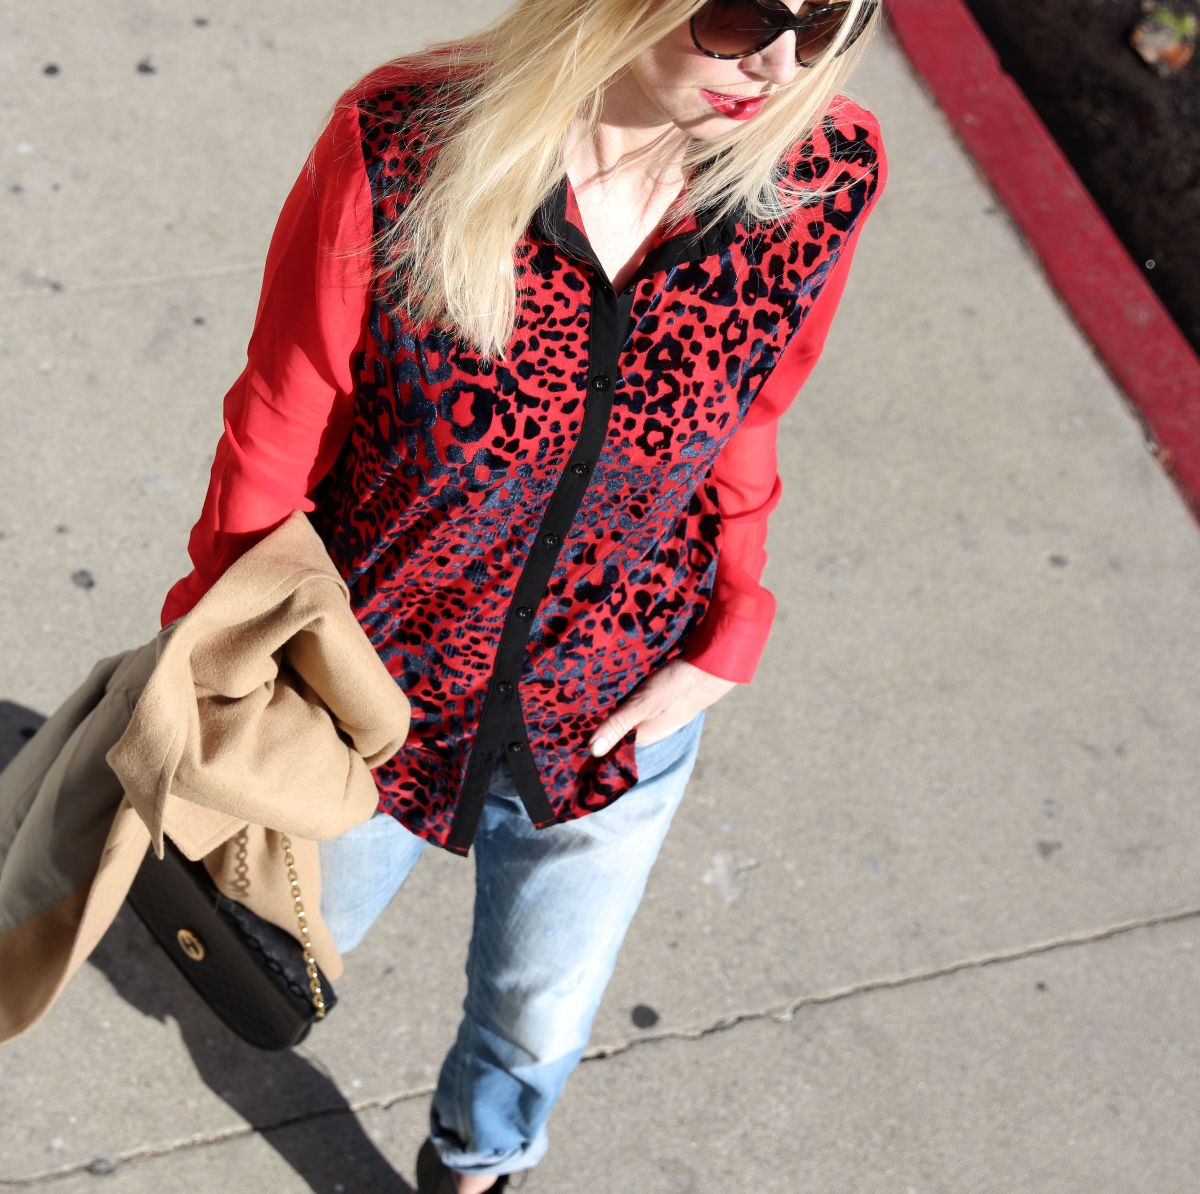 Boohoo red leopard shirt, currently crushing